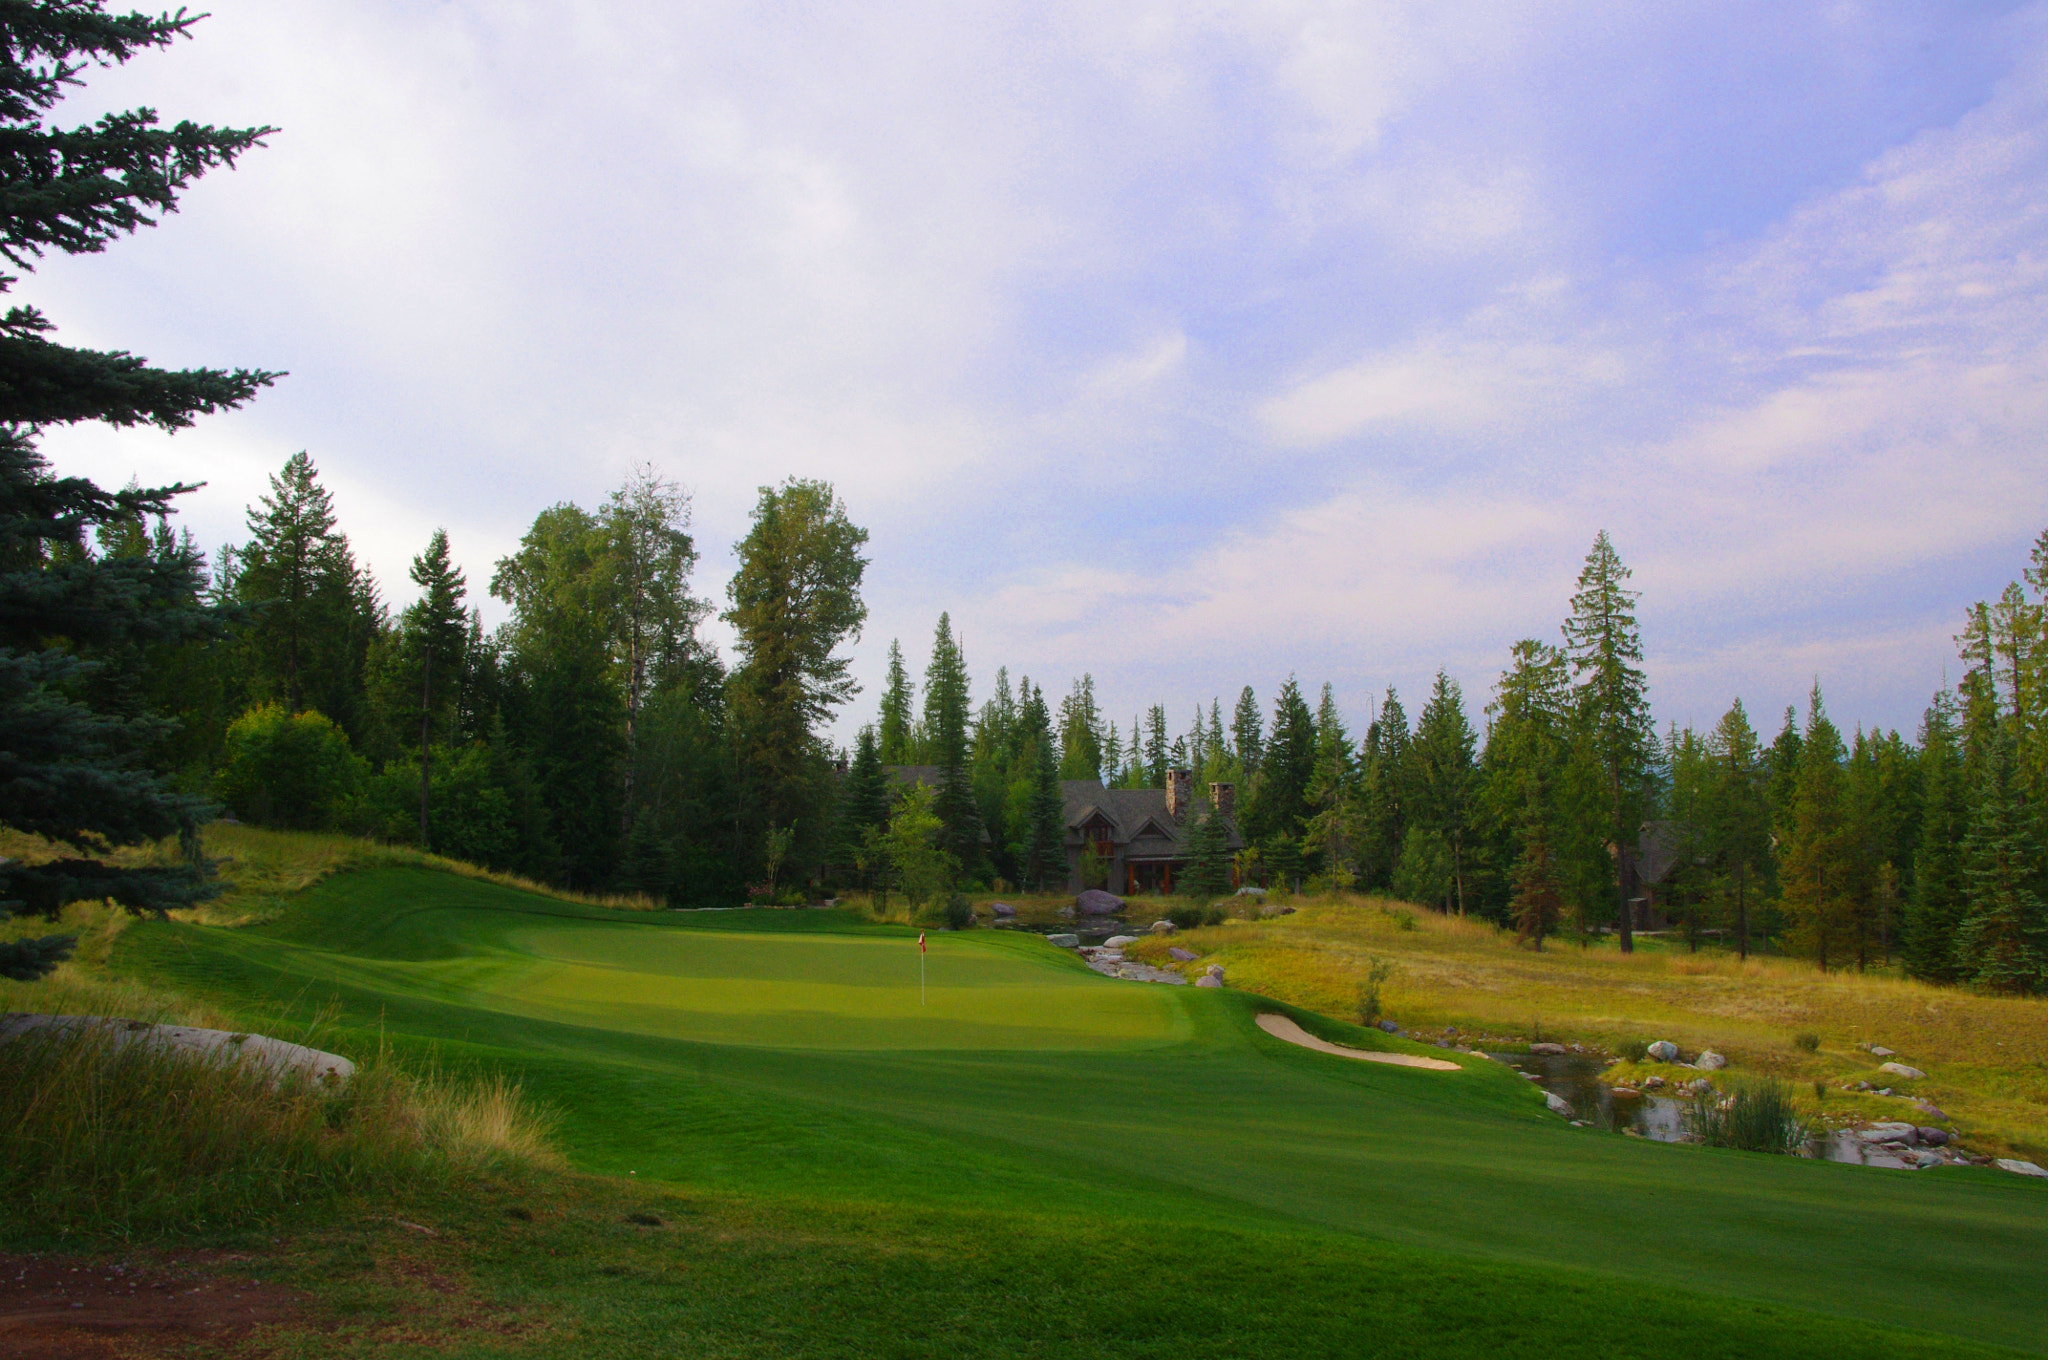 Photograph Hole 18 by Ross Wehner on 500px